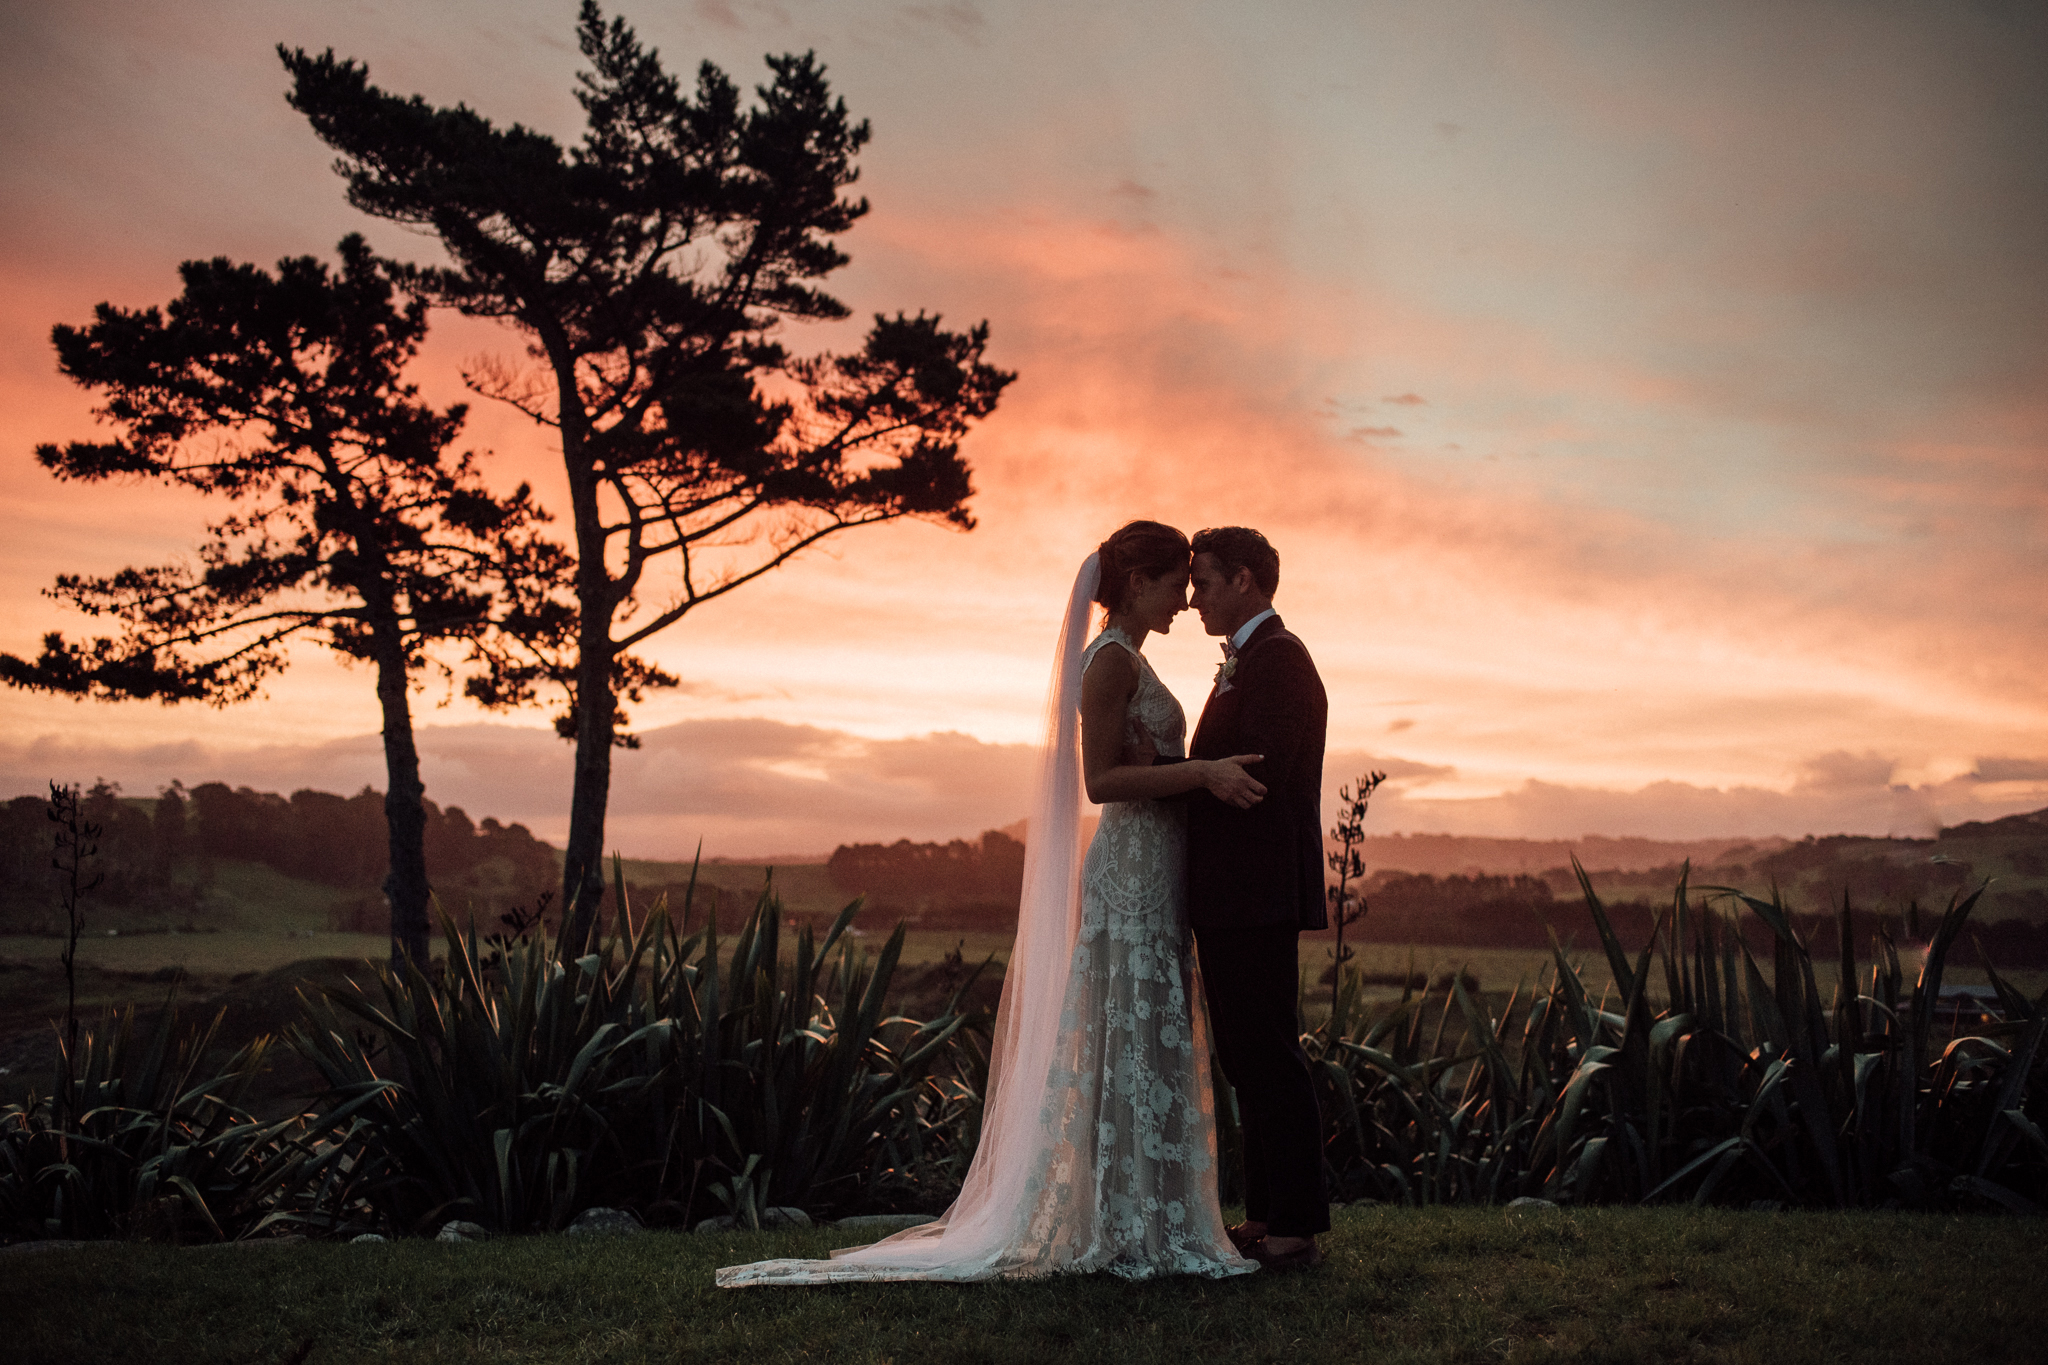 Wedding Photography sunset beach